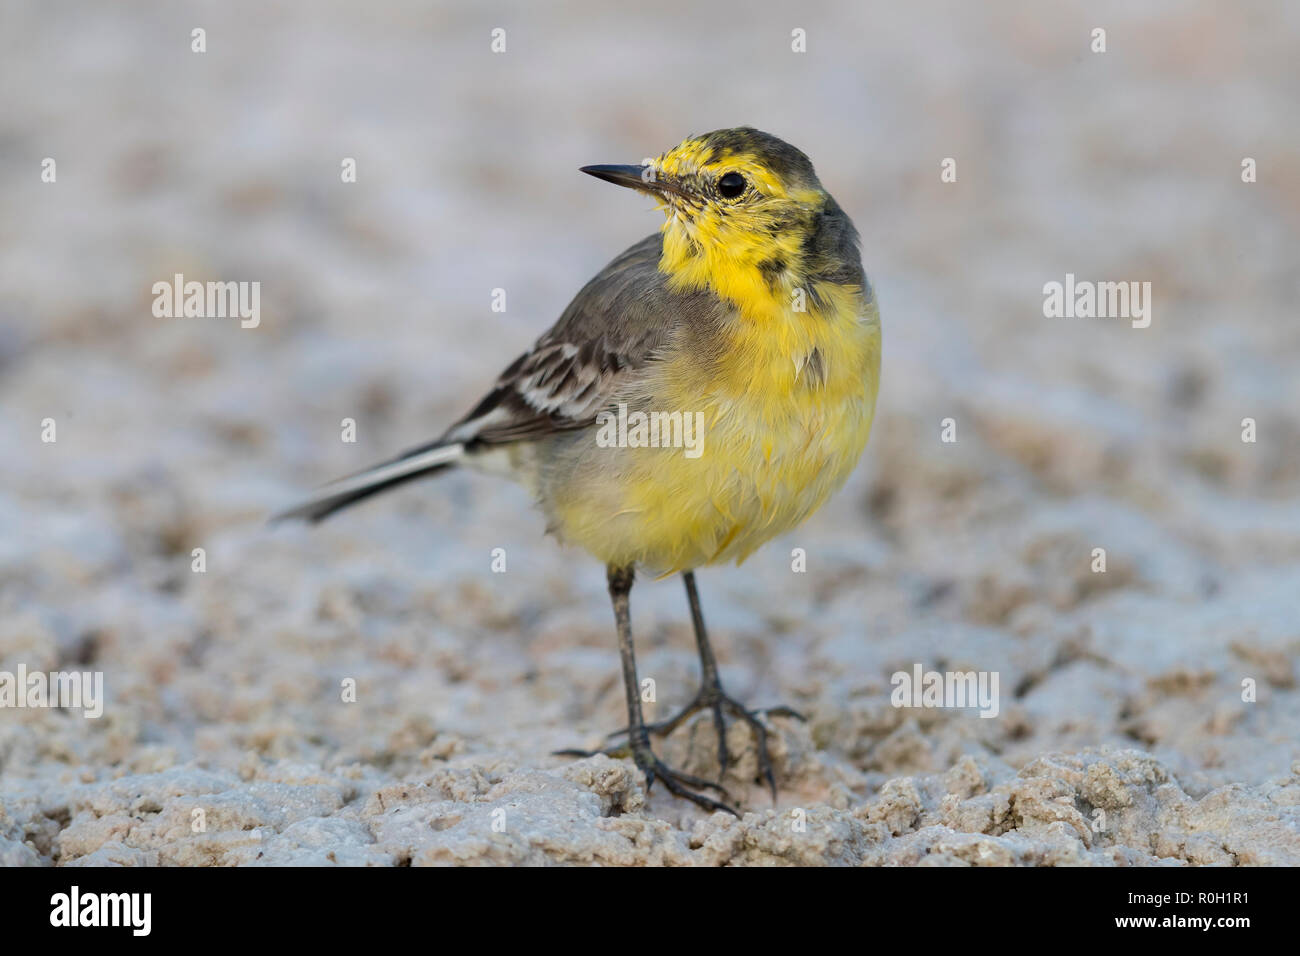 Citrine Wagtail (Motacilla citreola), front view of an adult in winter plumage in Oman - Stock Image